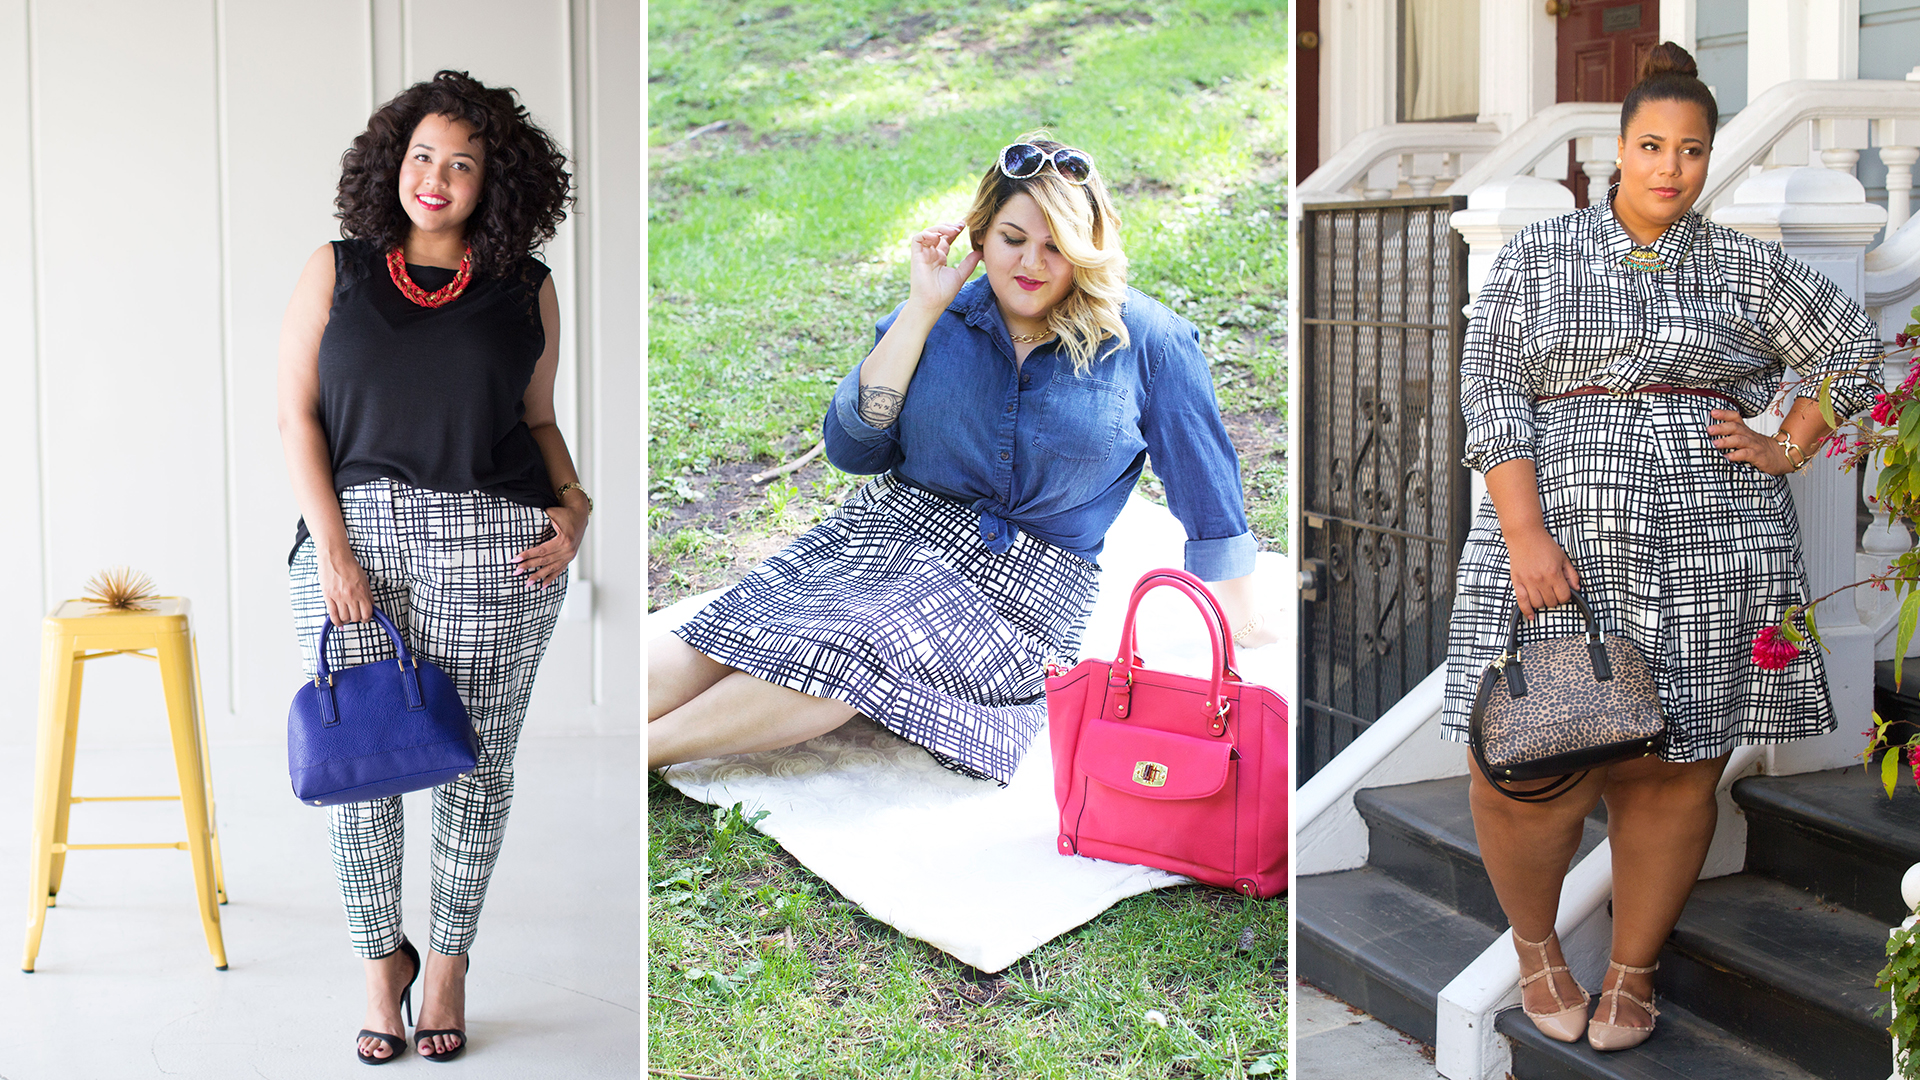 b3073a09385 Target unveils plus-size Ava   Viv collection for fall